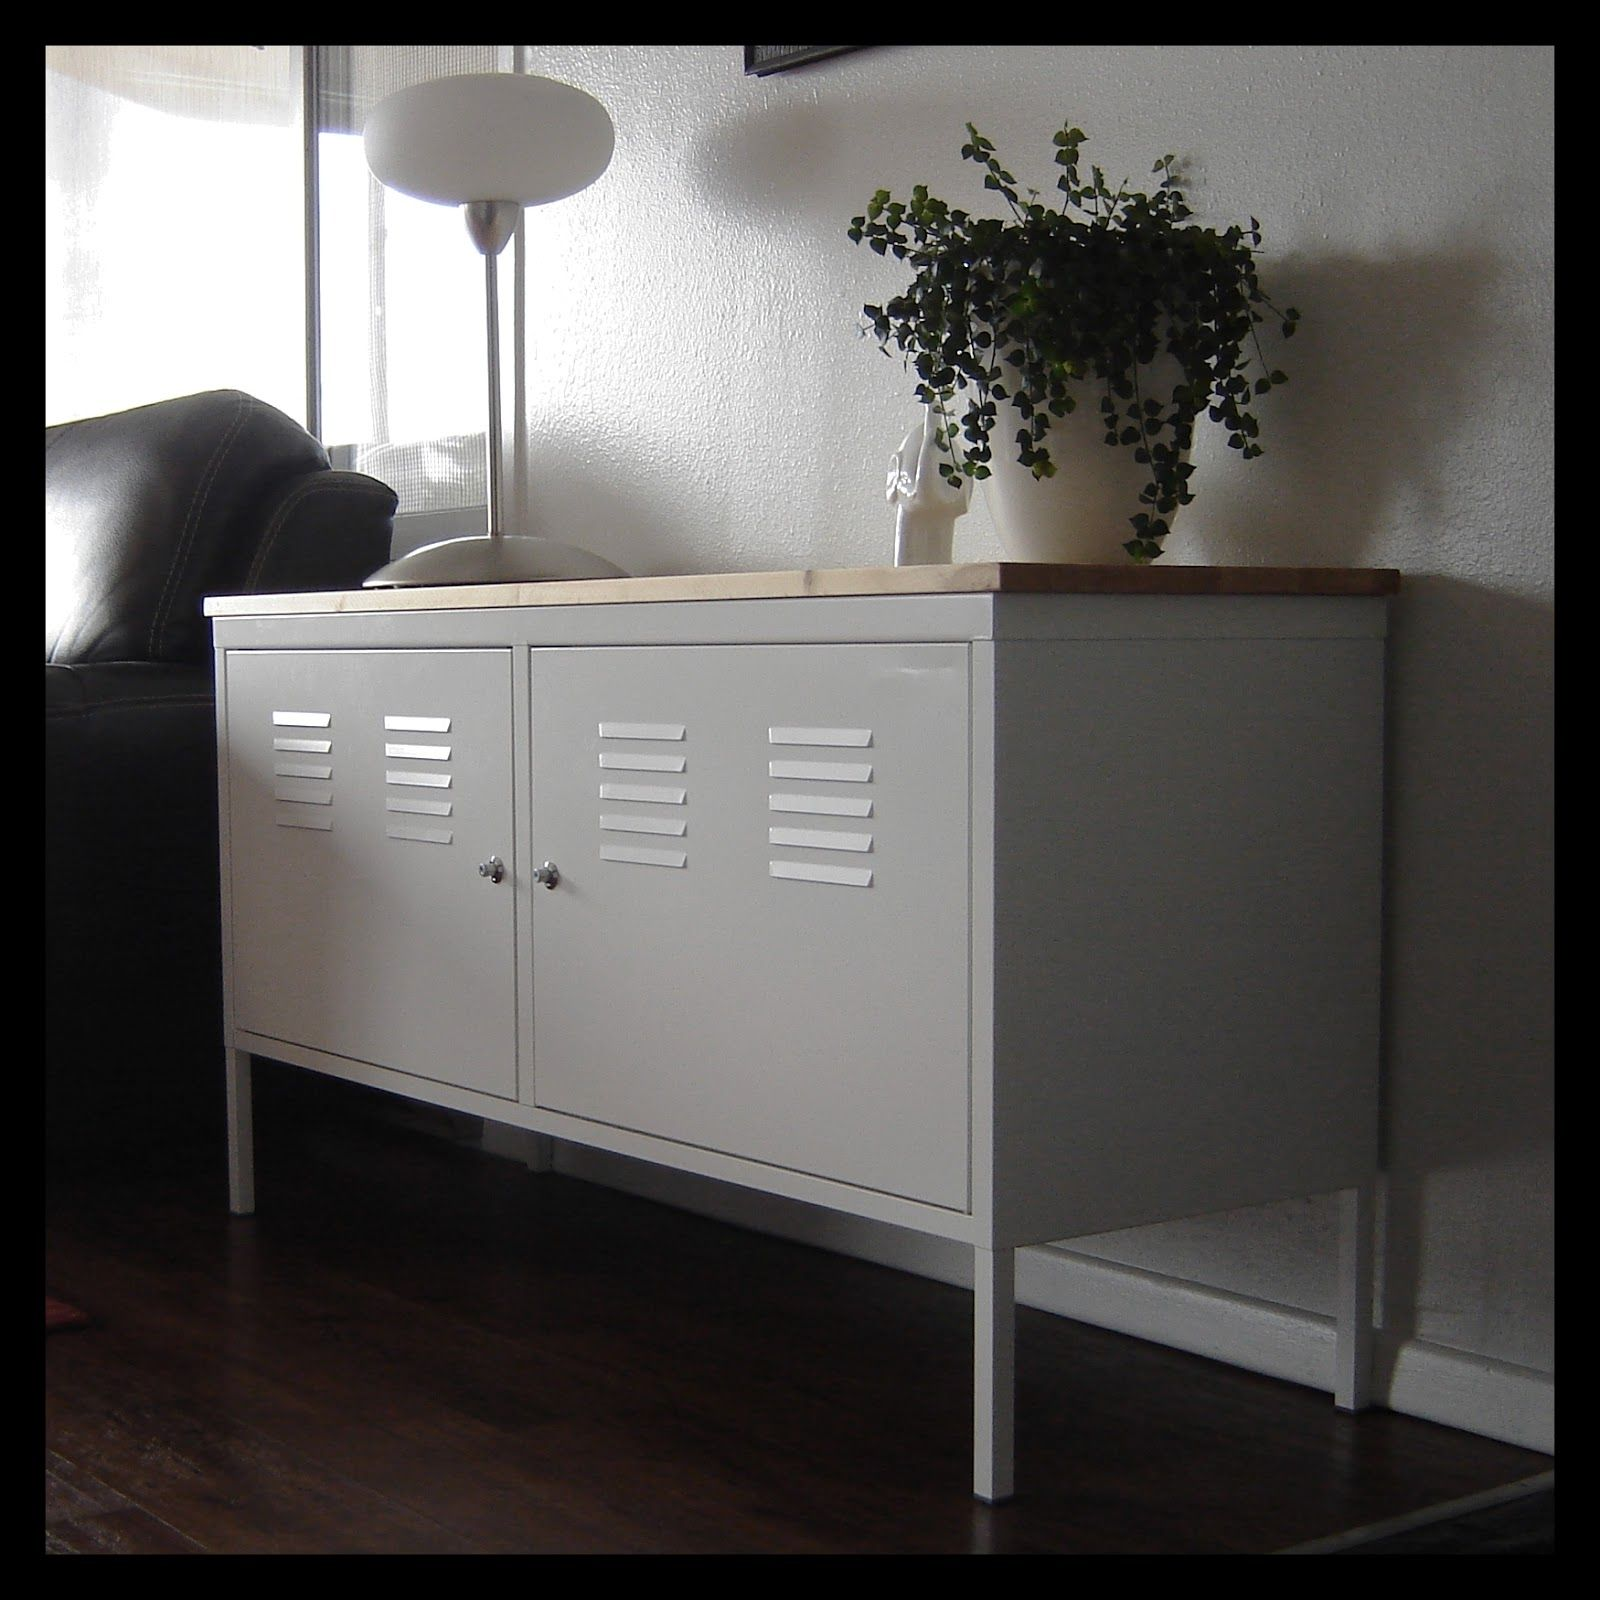 Muebles Metalicos Ikea Ikea Ps Cabinet Hack Apartment Pinte